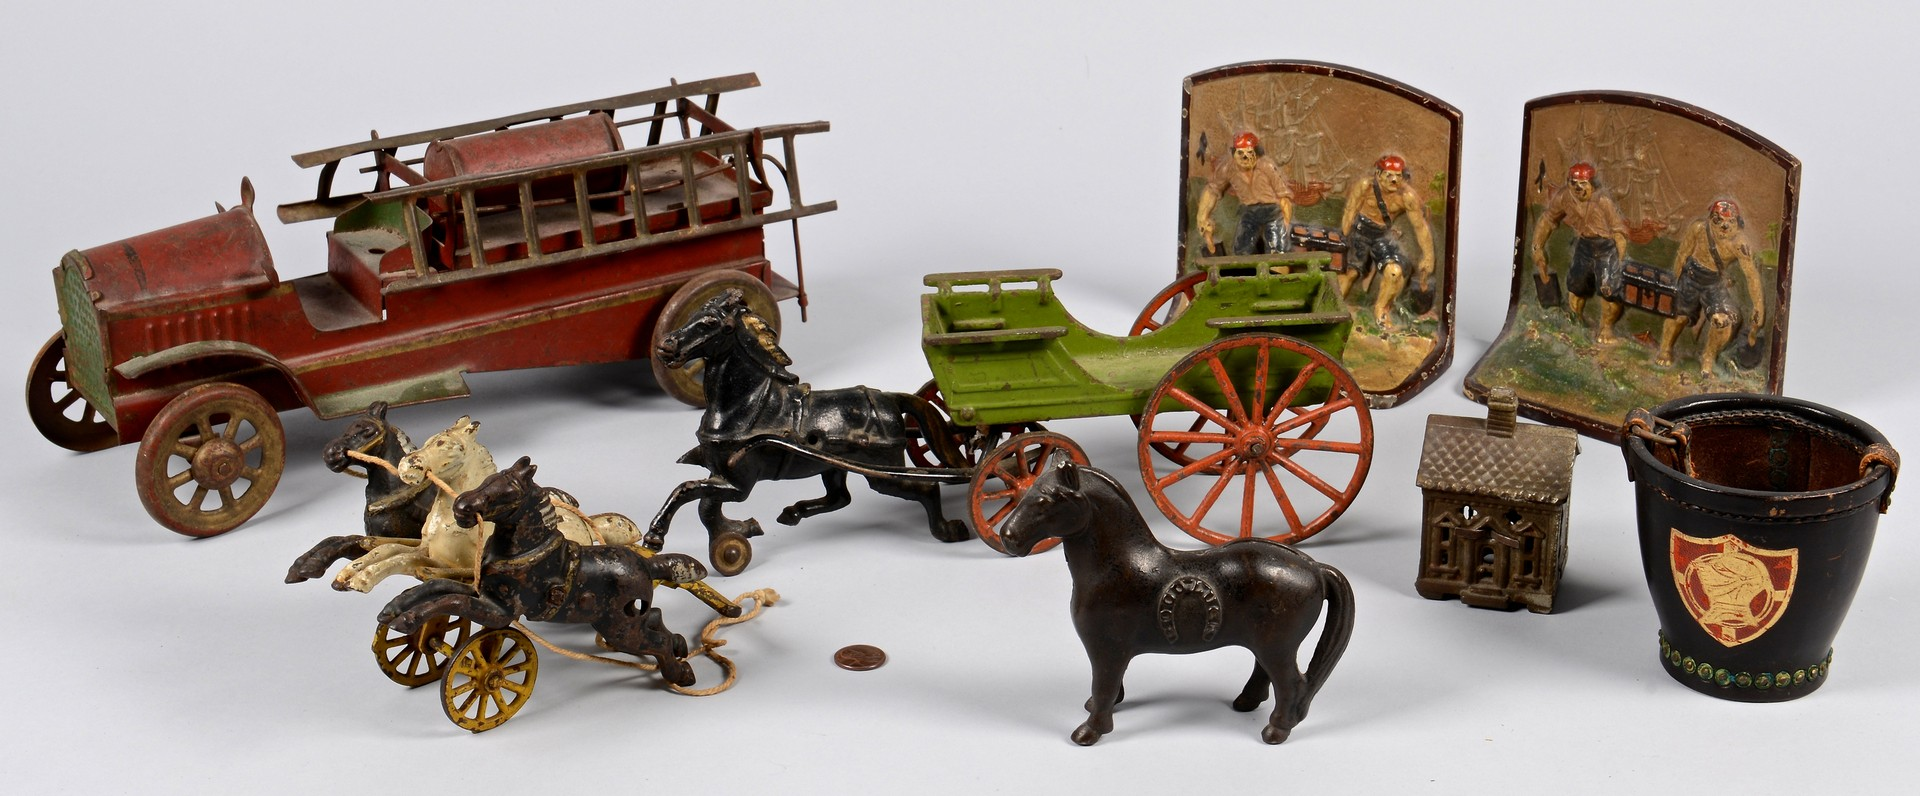 Lot 854: Assorted Cast Iron and Toy Items